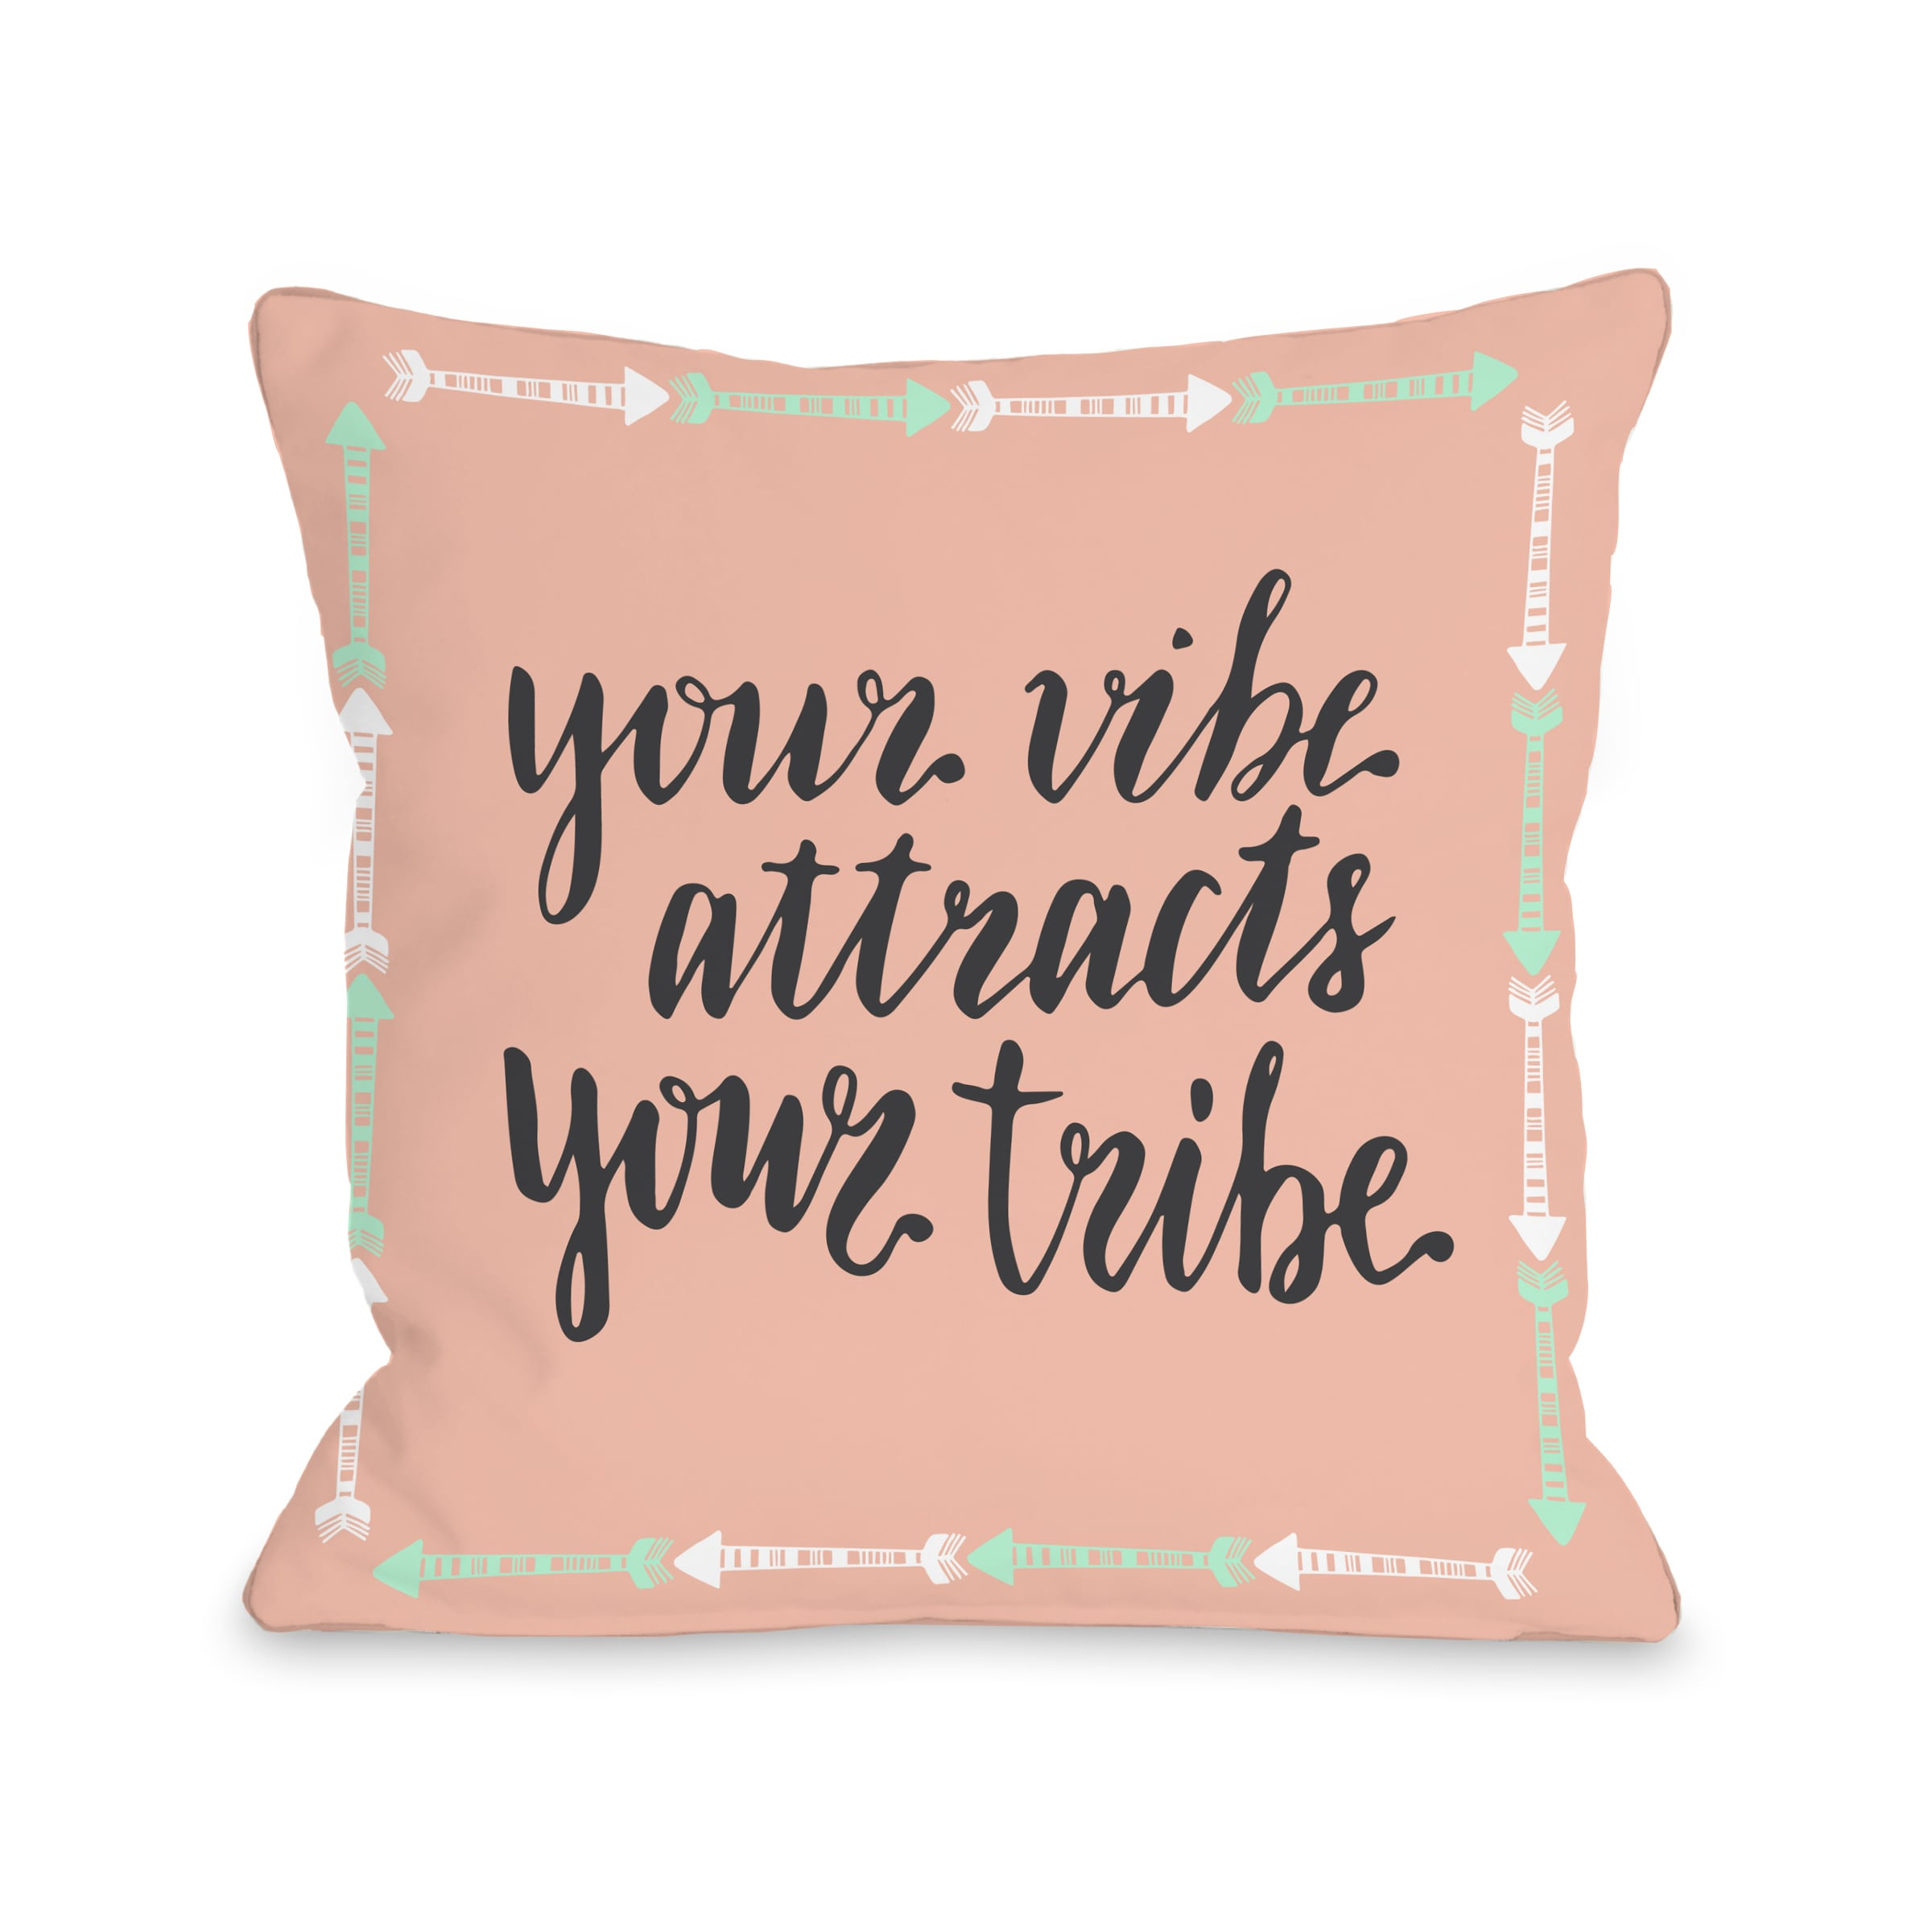 Vibe Tribe - Coral 18x18 Pillow by OBC